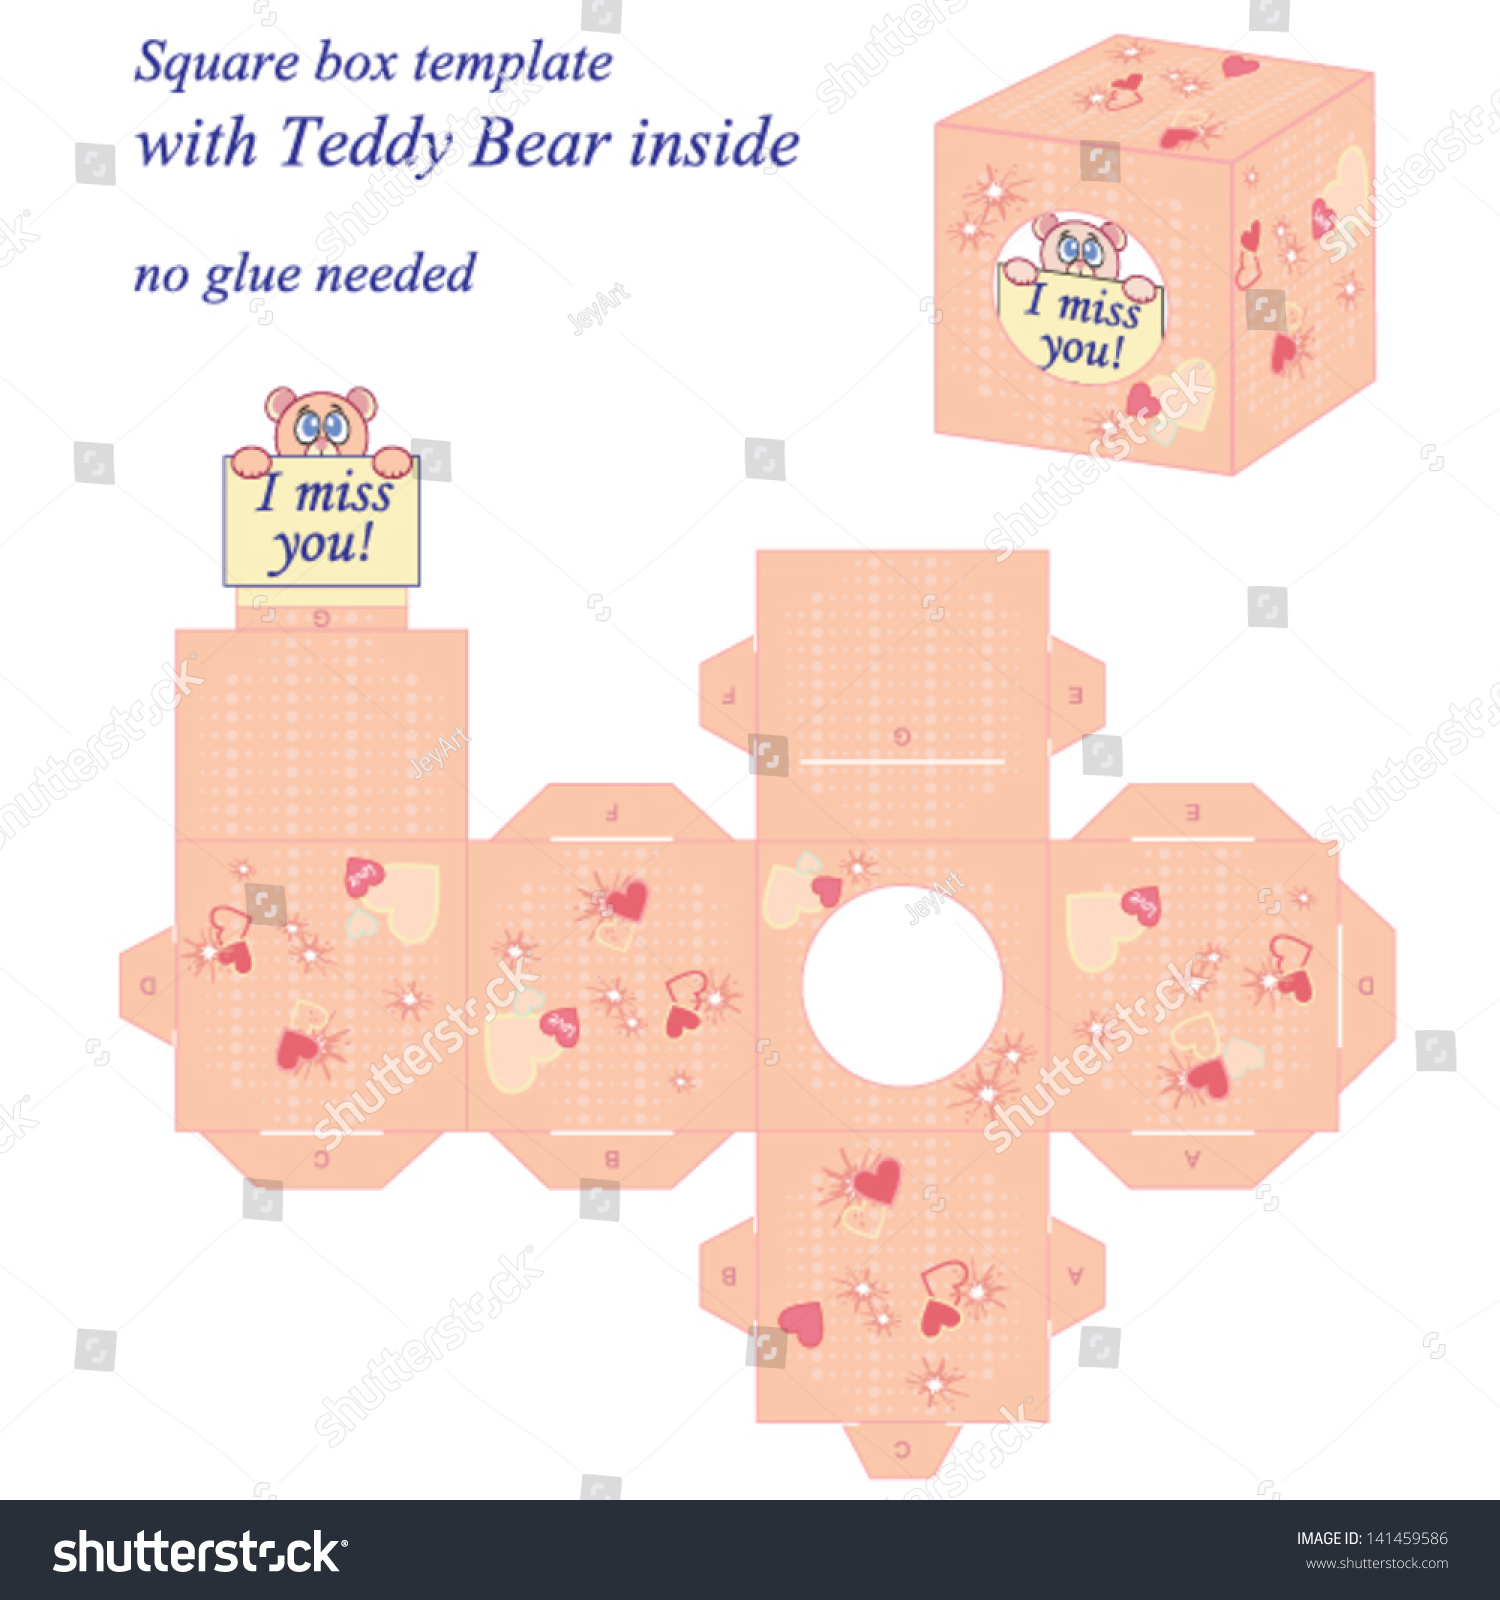 interesting square box template cute teddy stock vector royalty